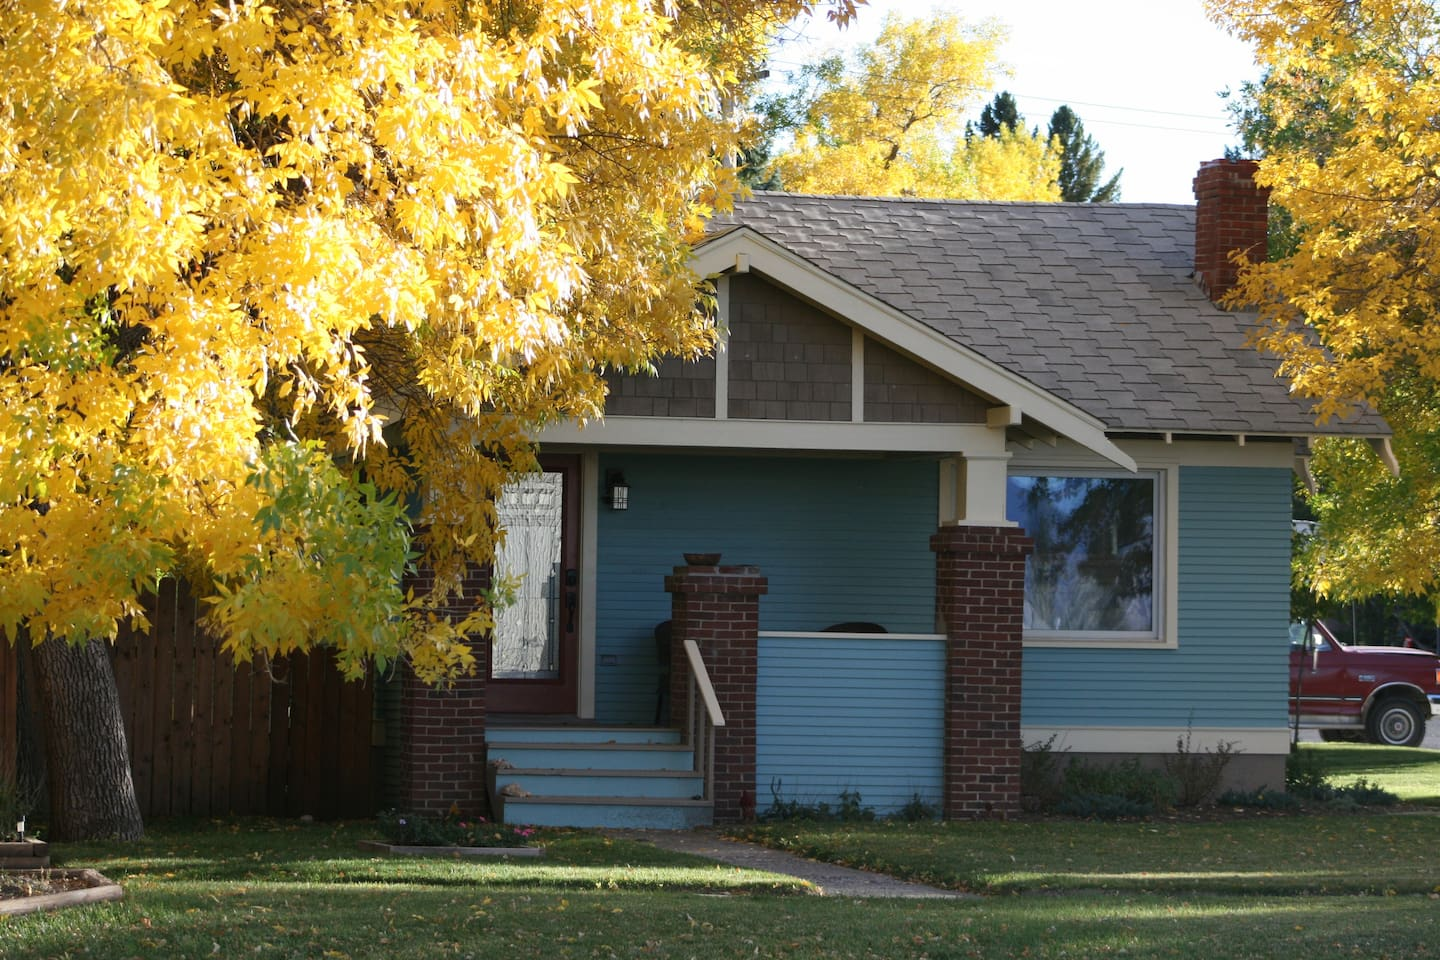 2 BR 1 Bath home has been recently remodeled and updated. This home is in a quiet neighborhood within walking distance of Buffalo Bill Historical center, parks, restaurants, and downtown Cody.